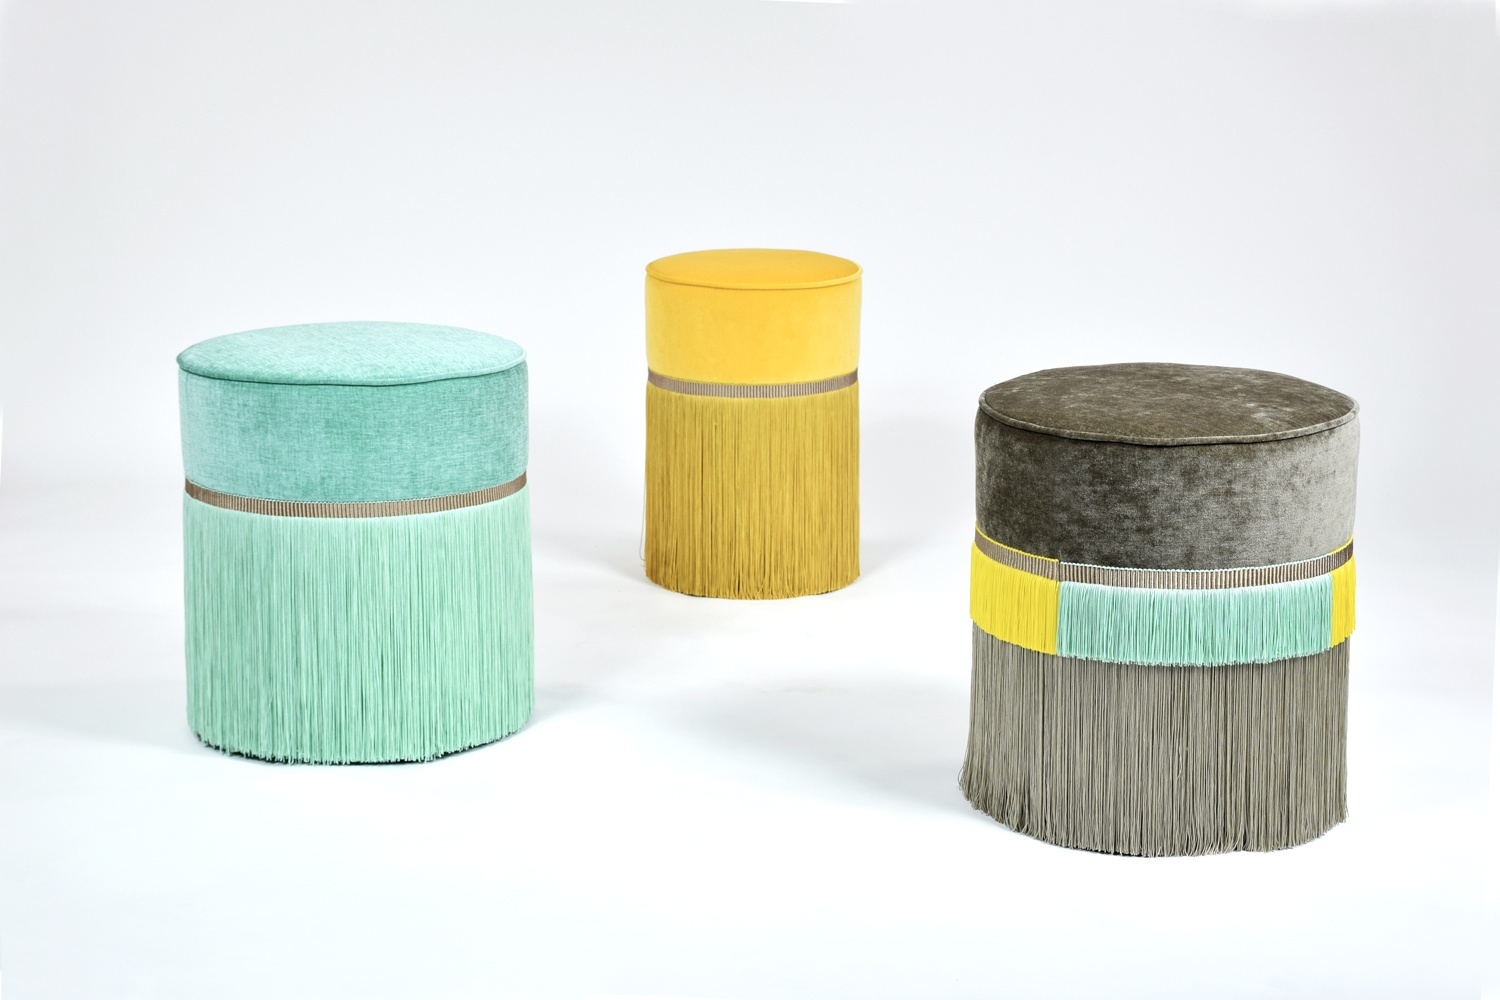 lorenza-bozzoli-presents-couture-pouf-for-luisa-via-roma-home-yellowtrace-04